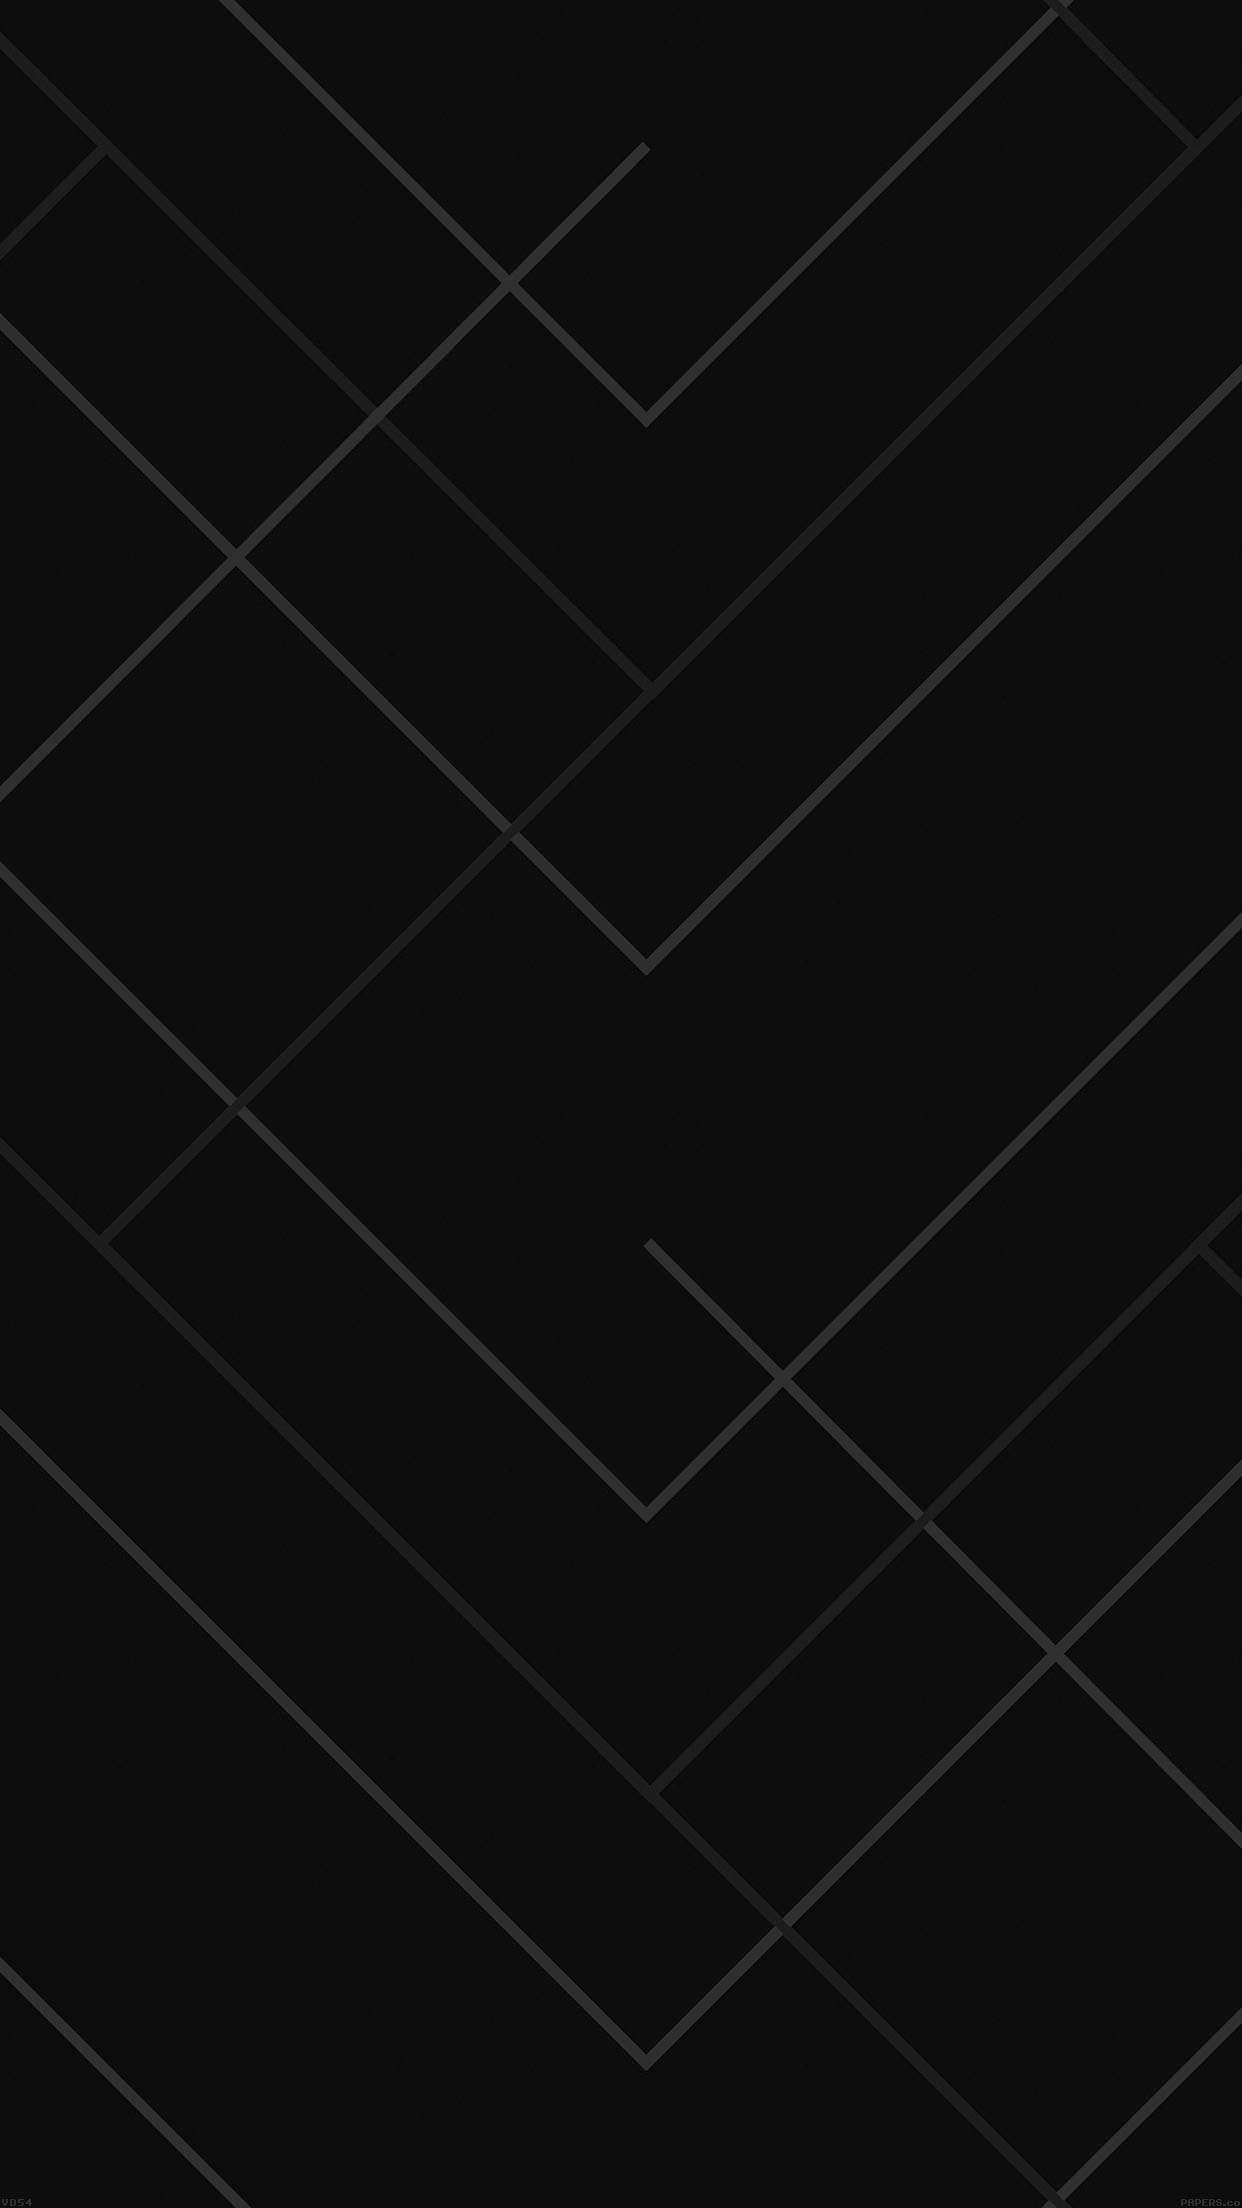 abstract-black-geometric-line-pattern-34-iphone-7-plus-wallpaper